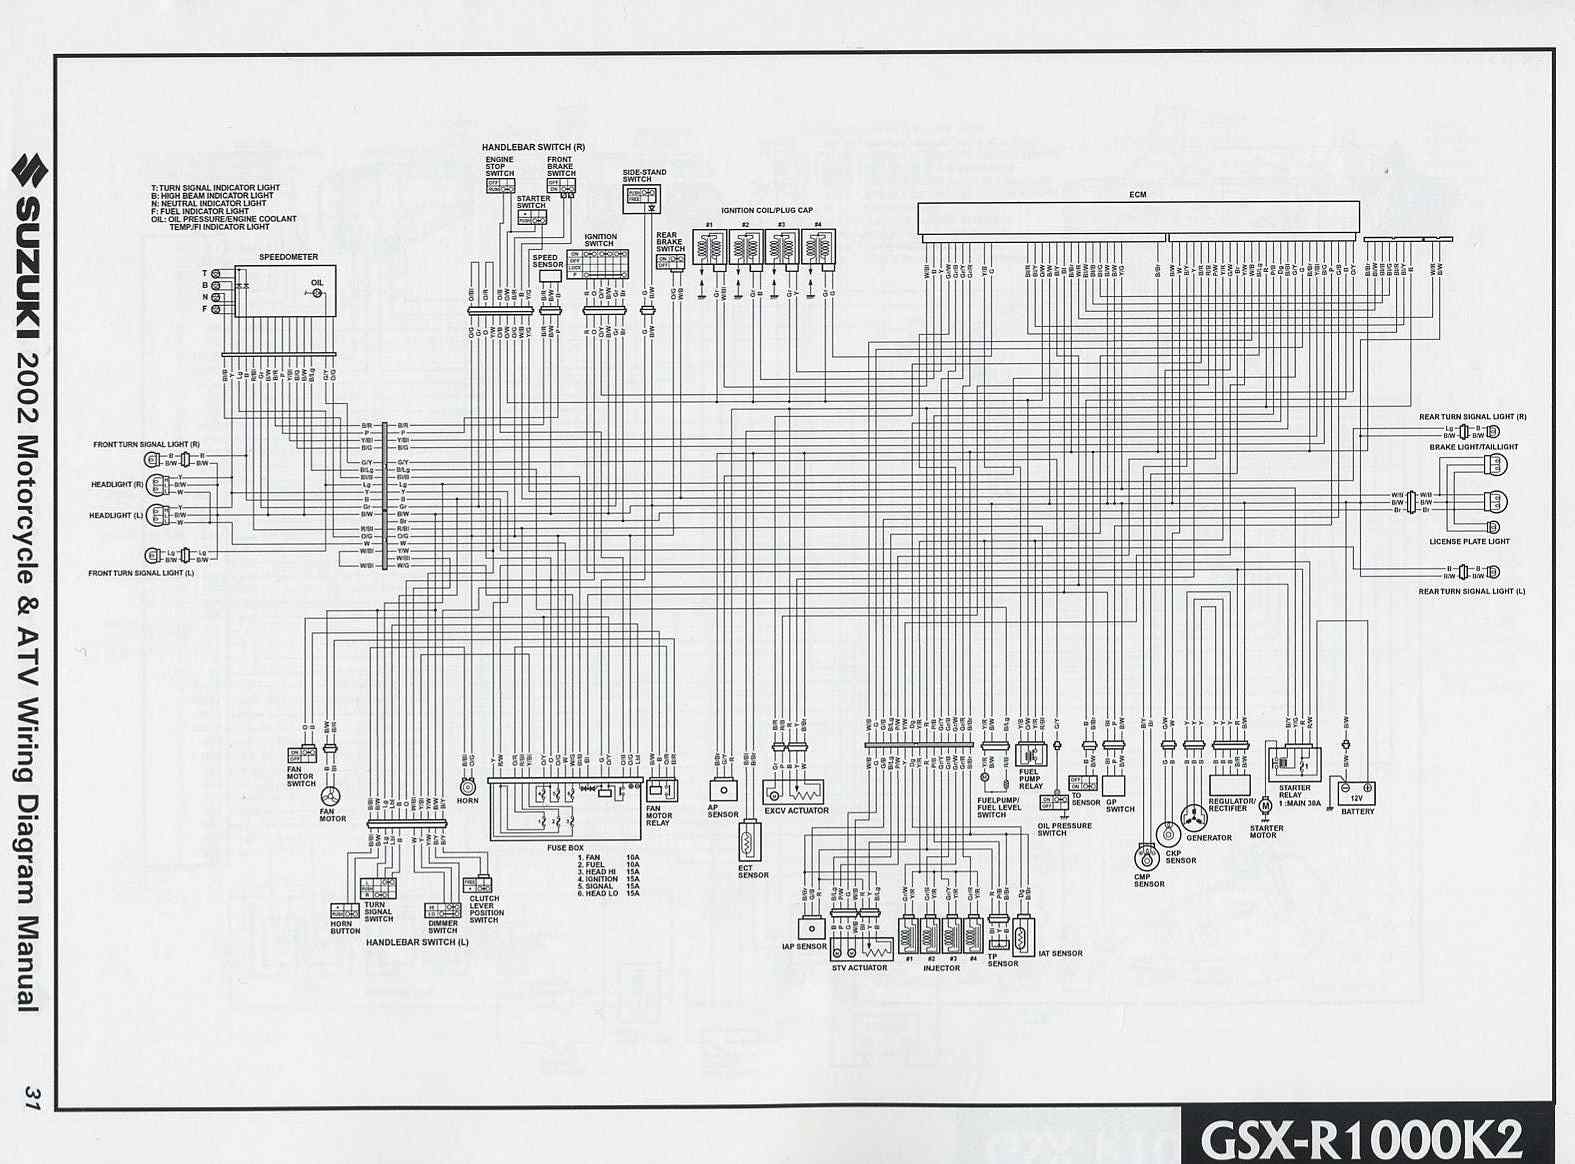 hight resolution of 2001 suzuki gsxr wiring diagram